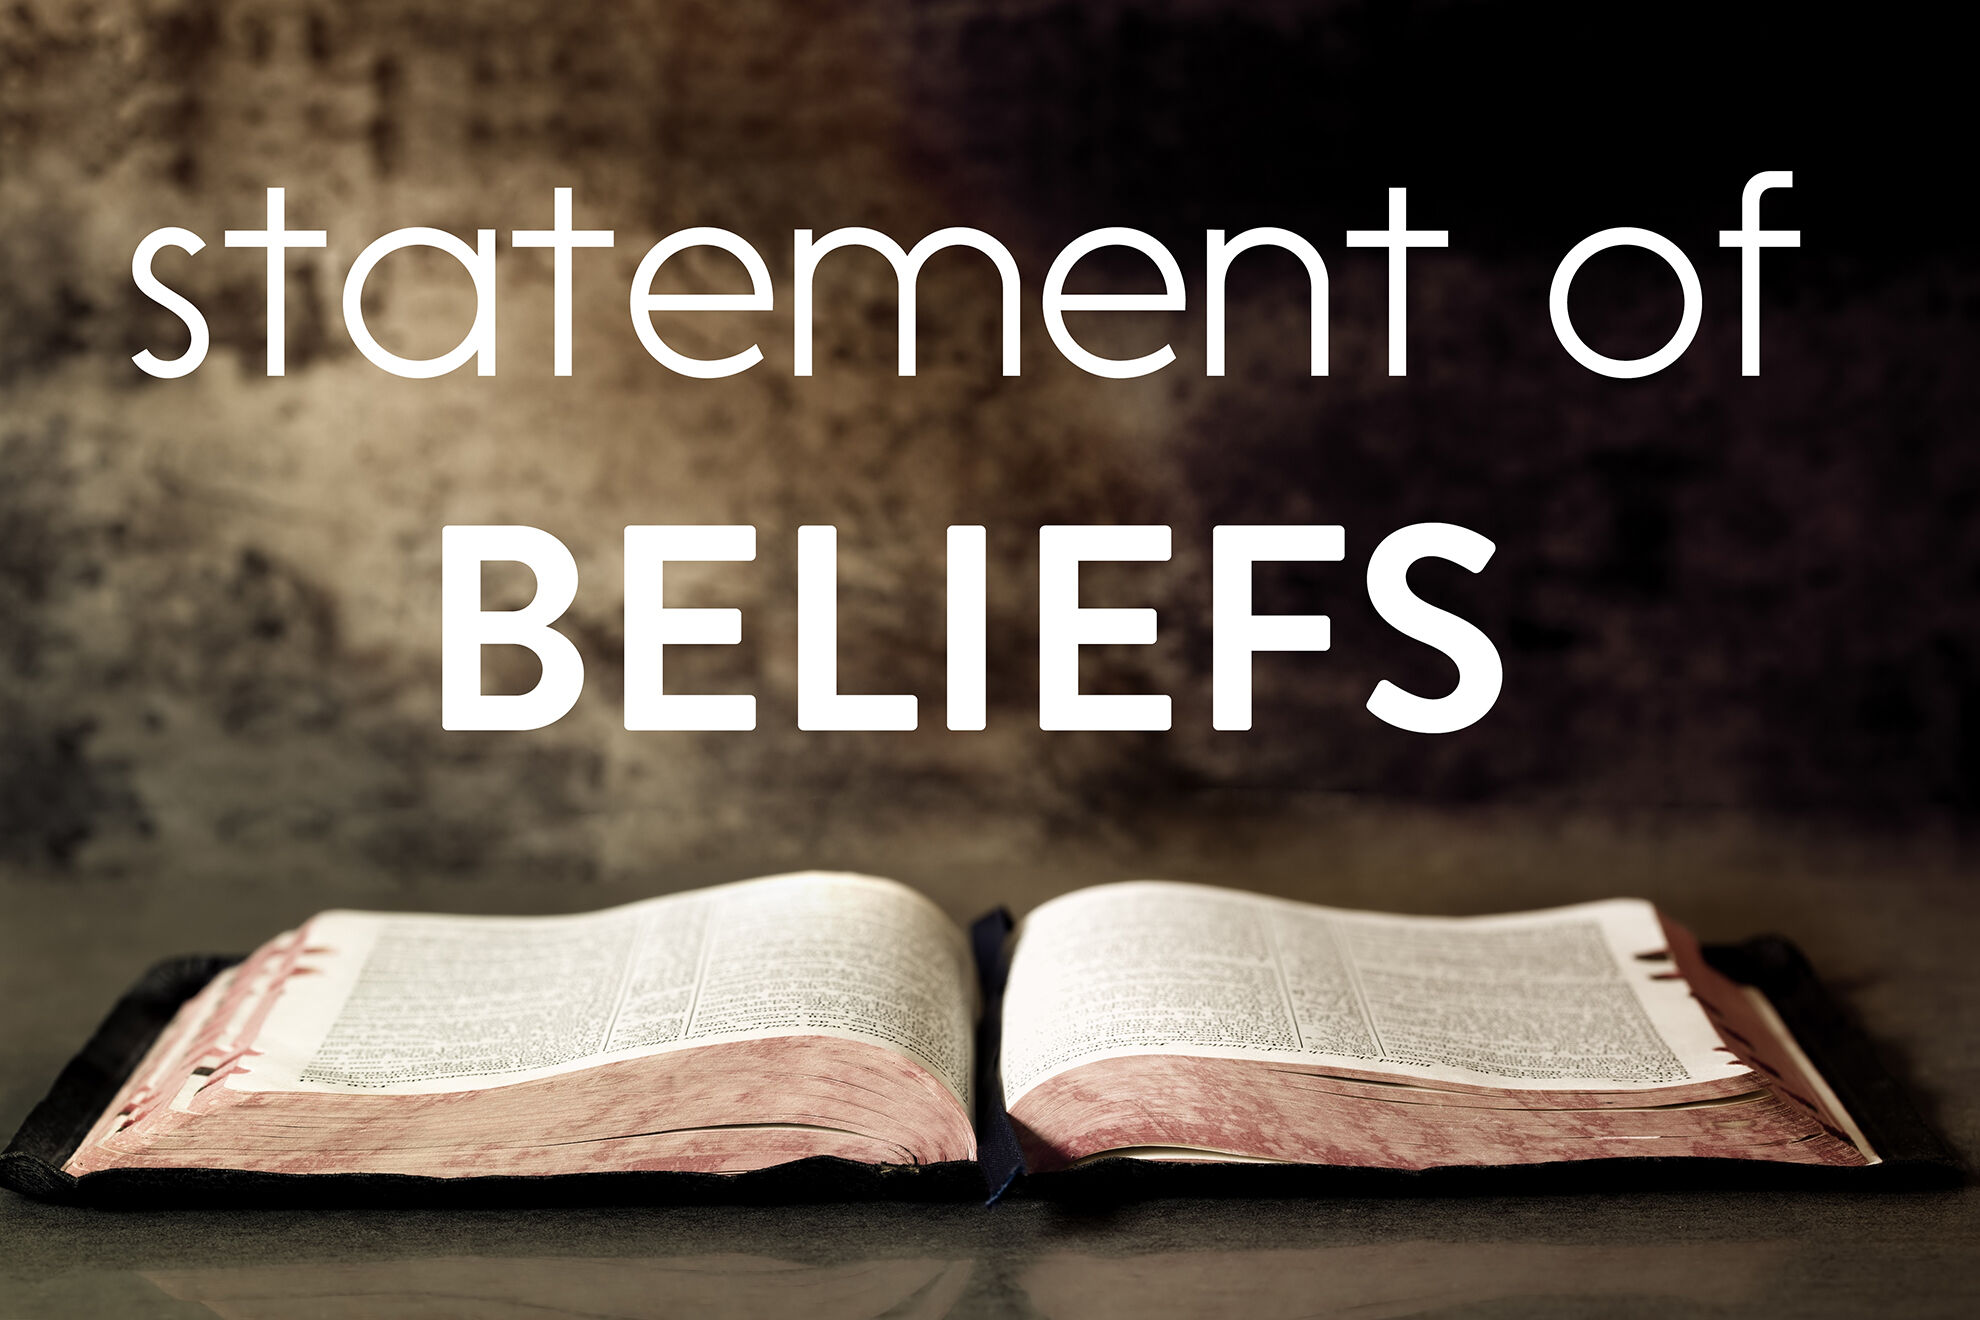 Statement of Beliefs